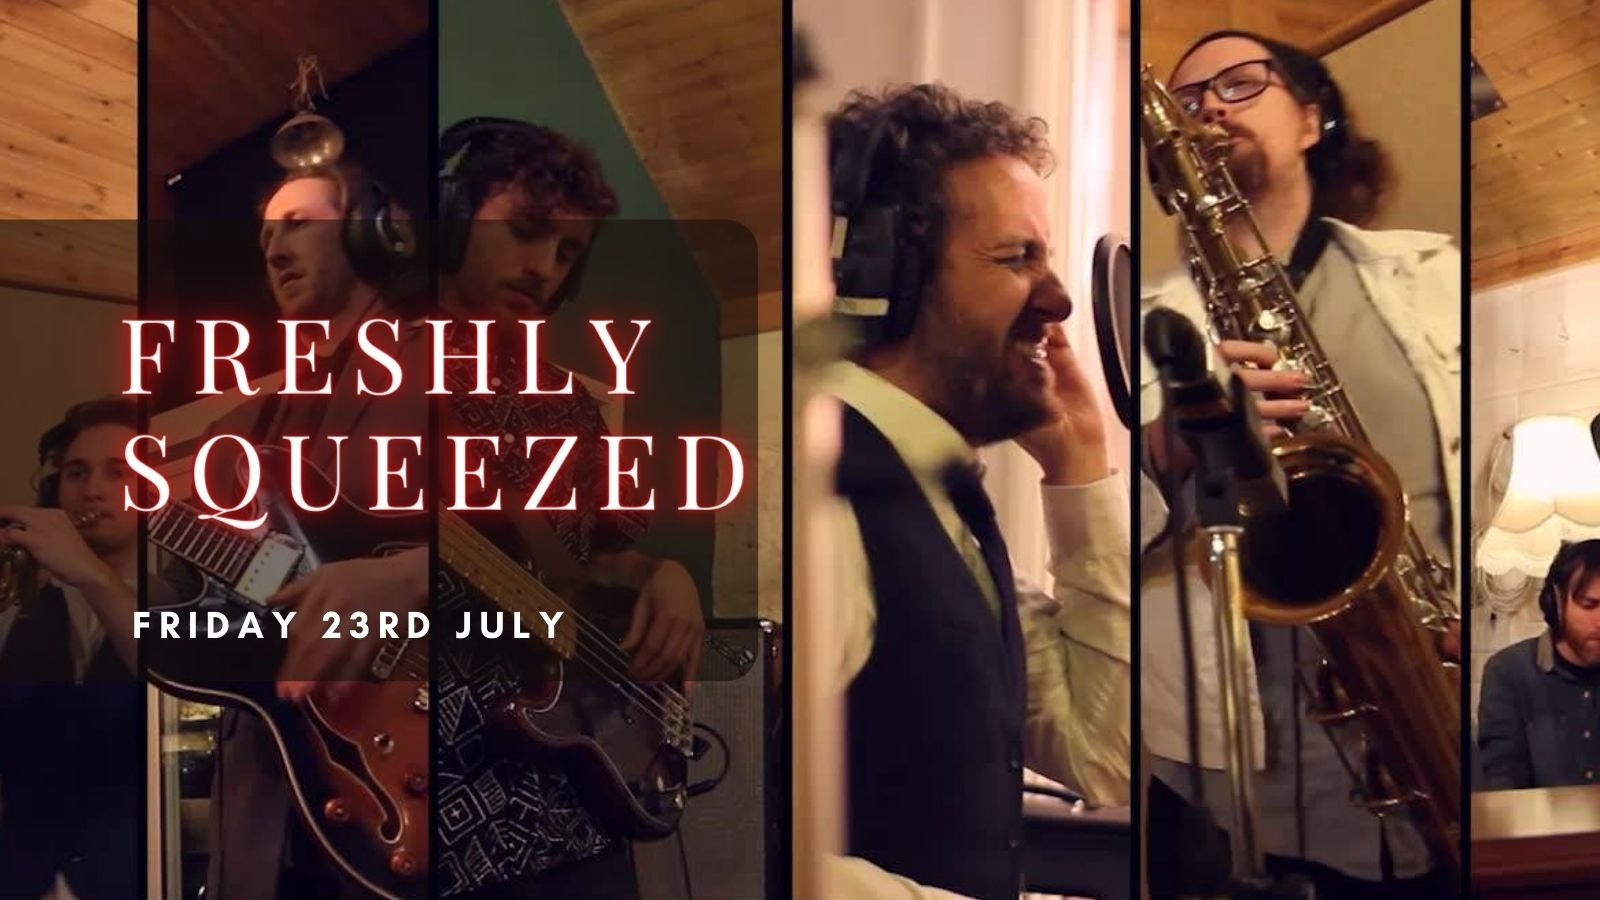 FRESHLY SQUEEZED | Plymouth, Annabel's Cabaret & Discotheque